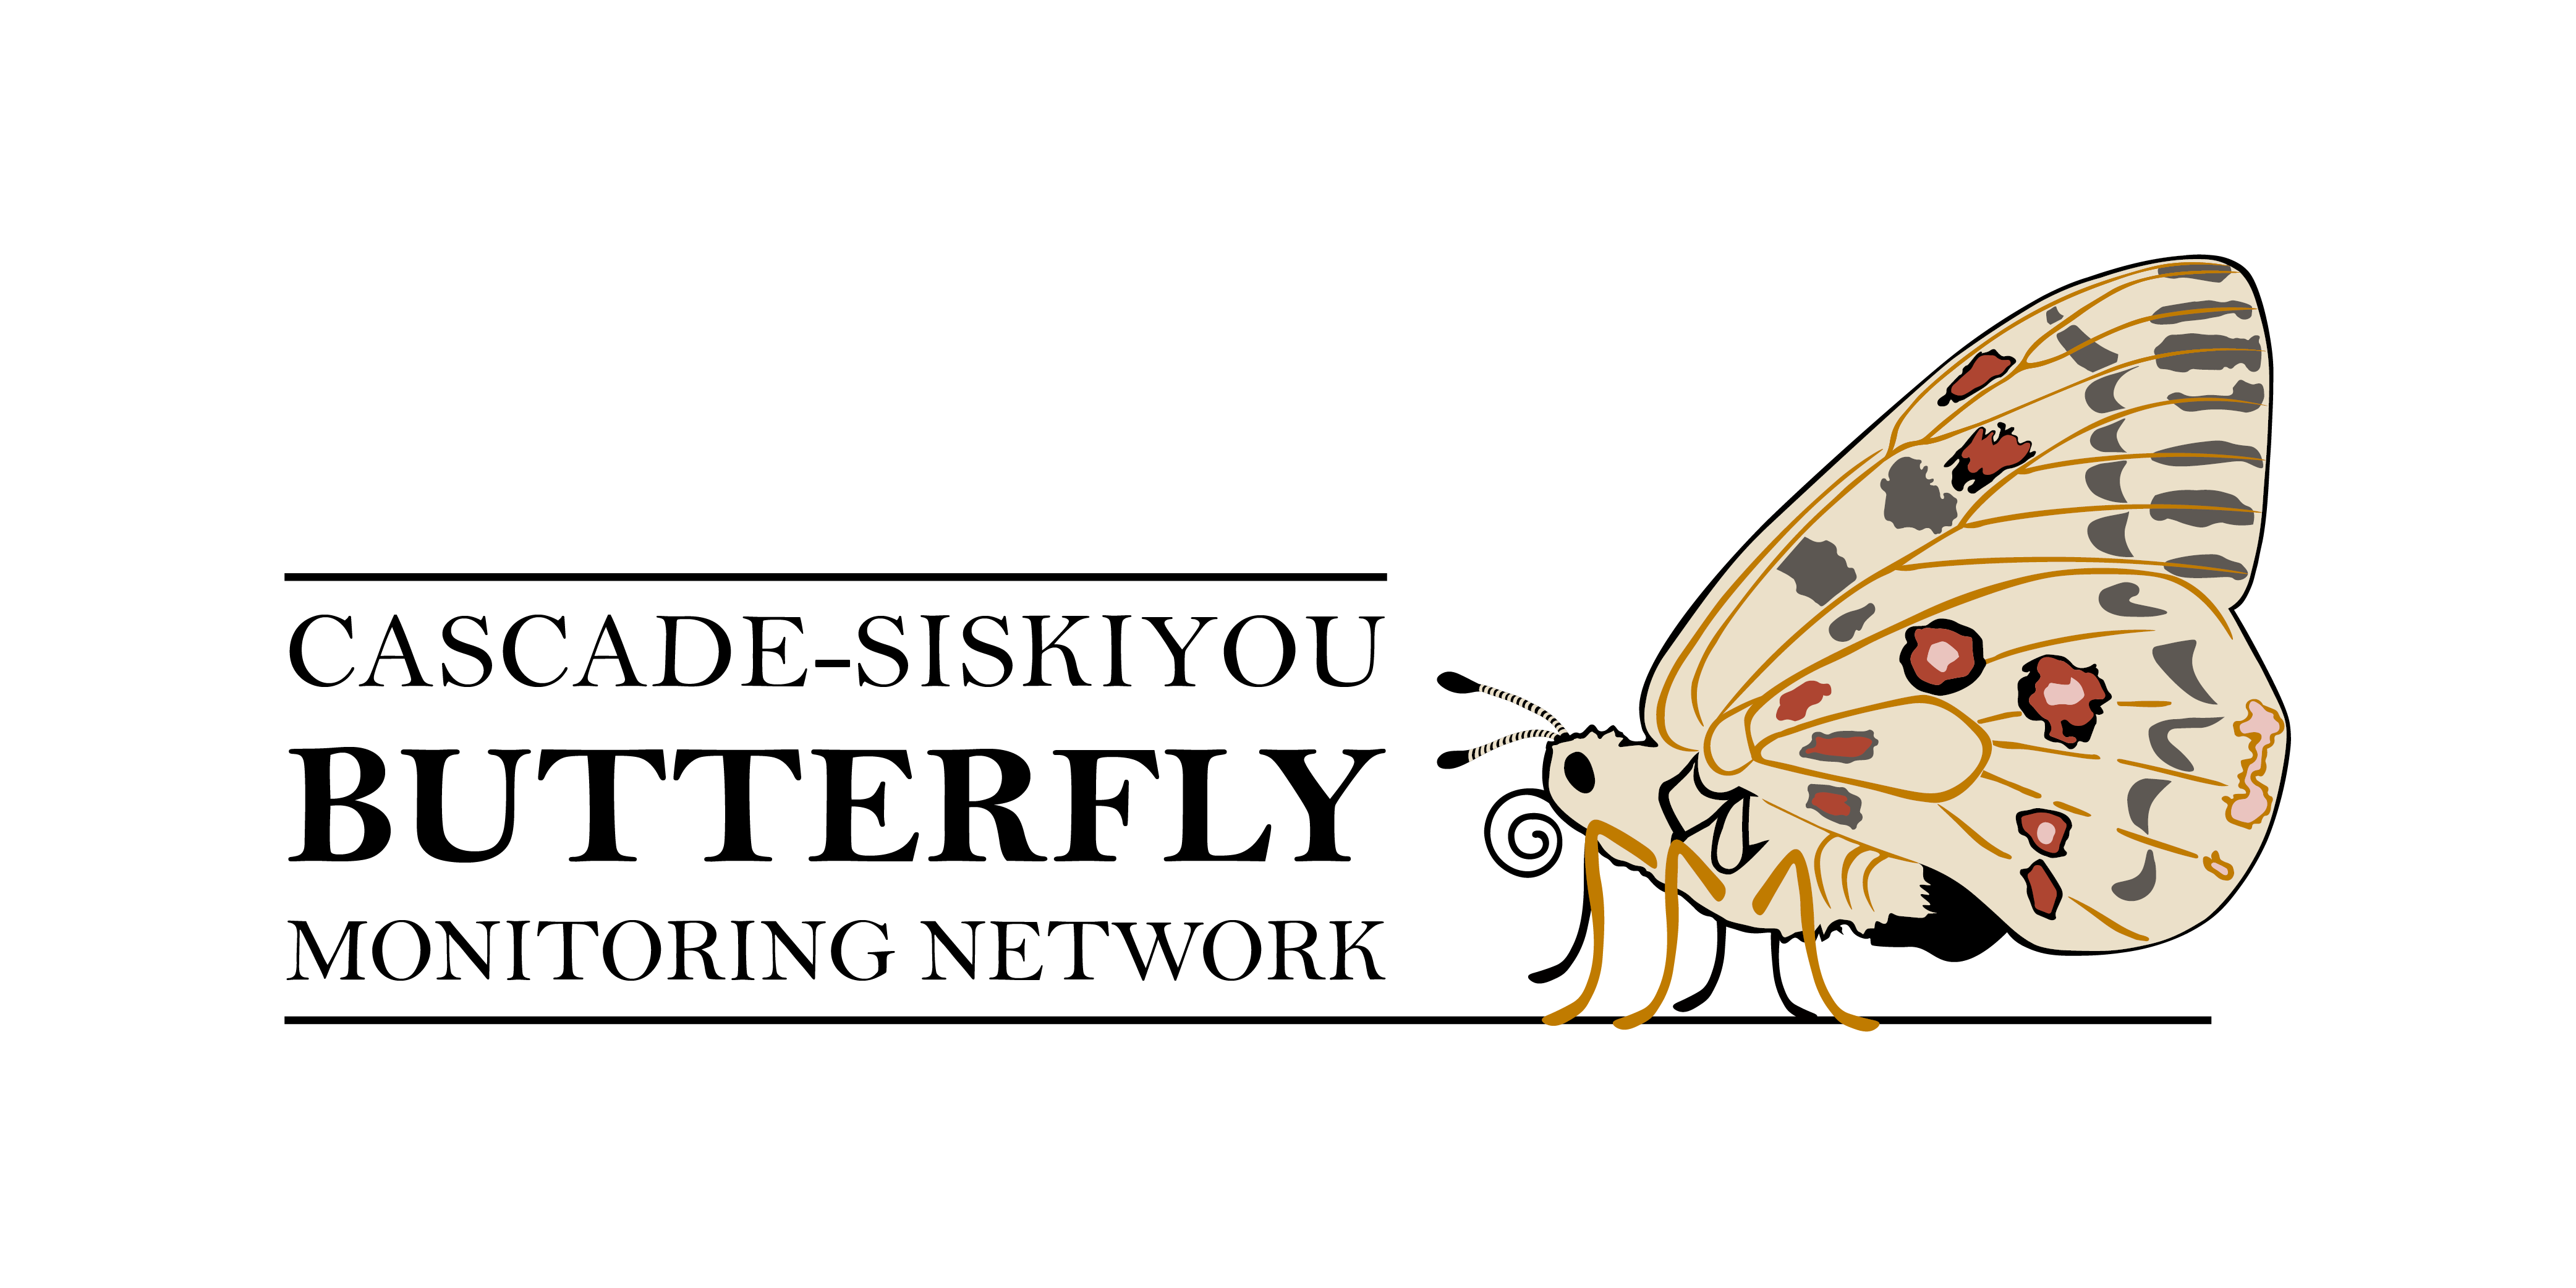 The logo of the Cascade-Siskiyou Butterfly Monitoring Network is shown, with the name of the program and a stylized butterfly with red and dark spots on its wings.